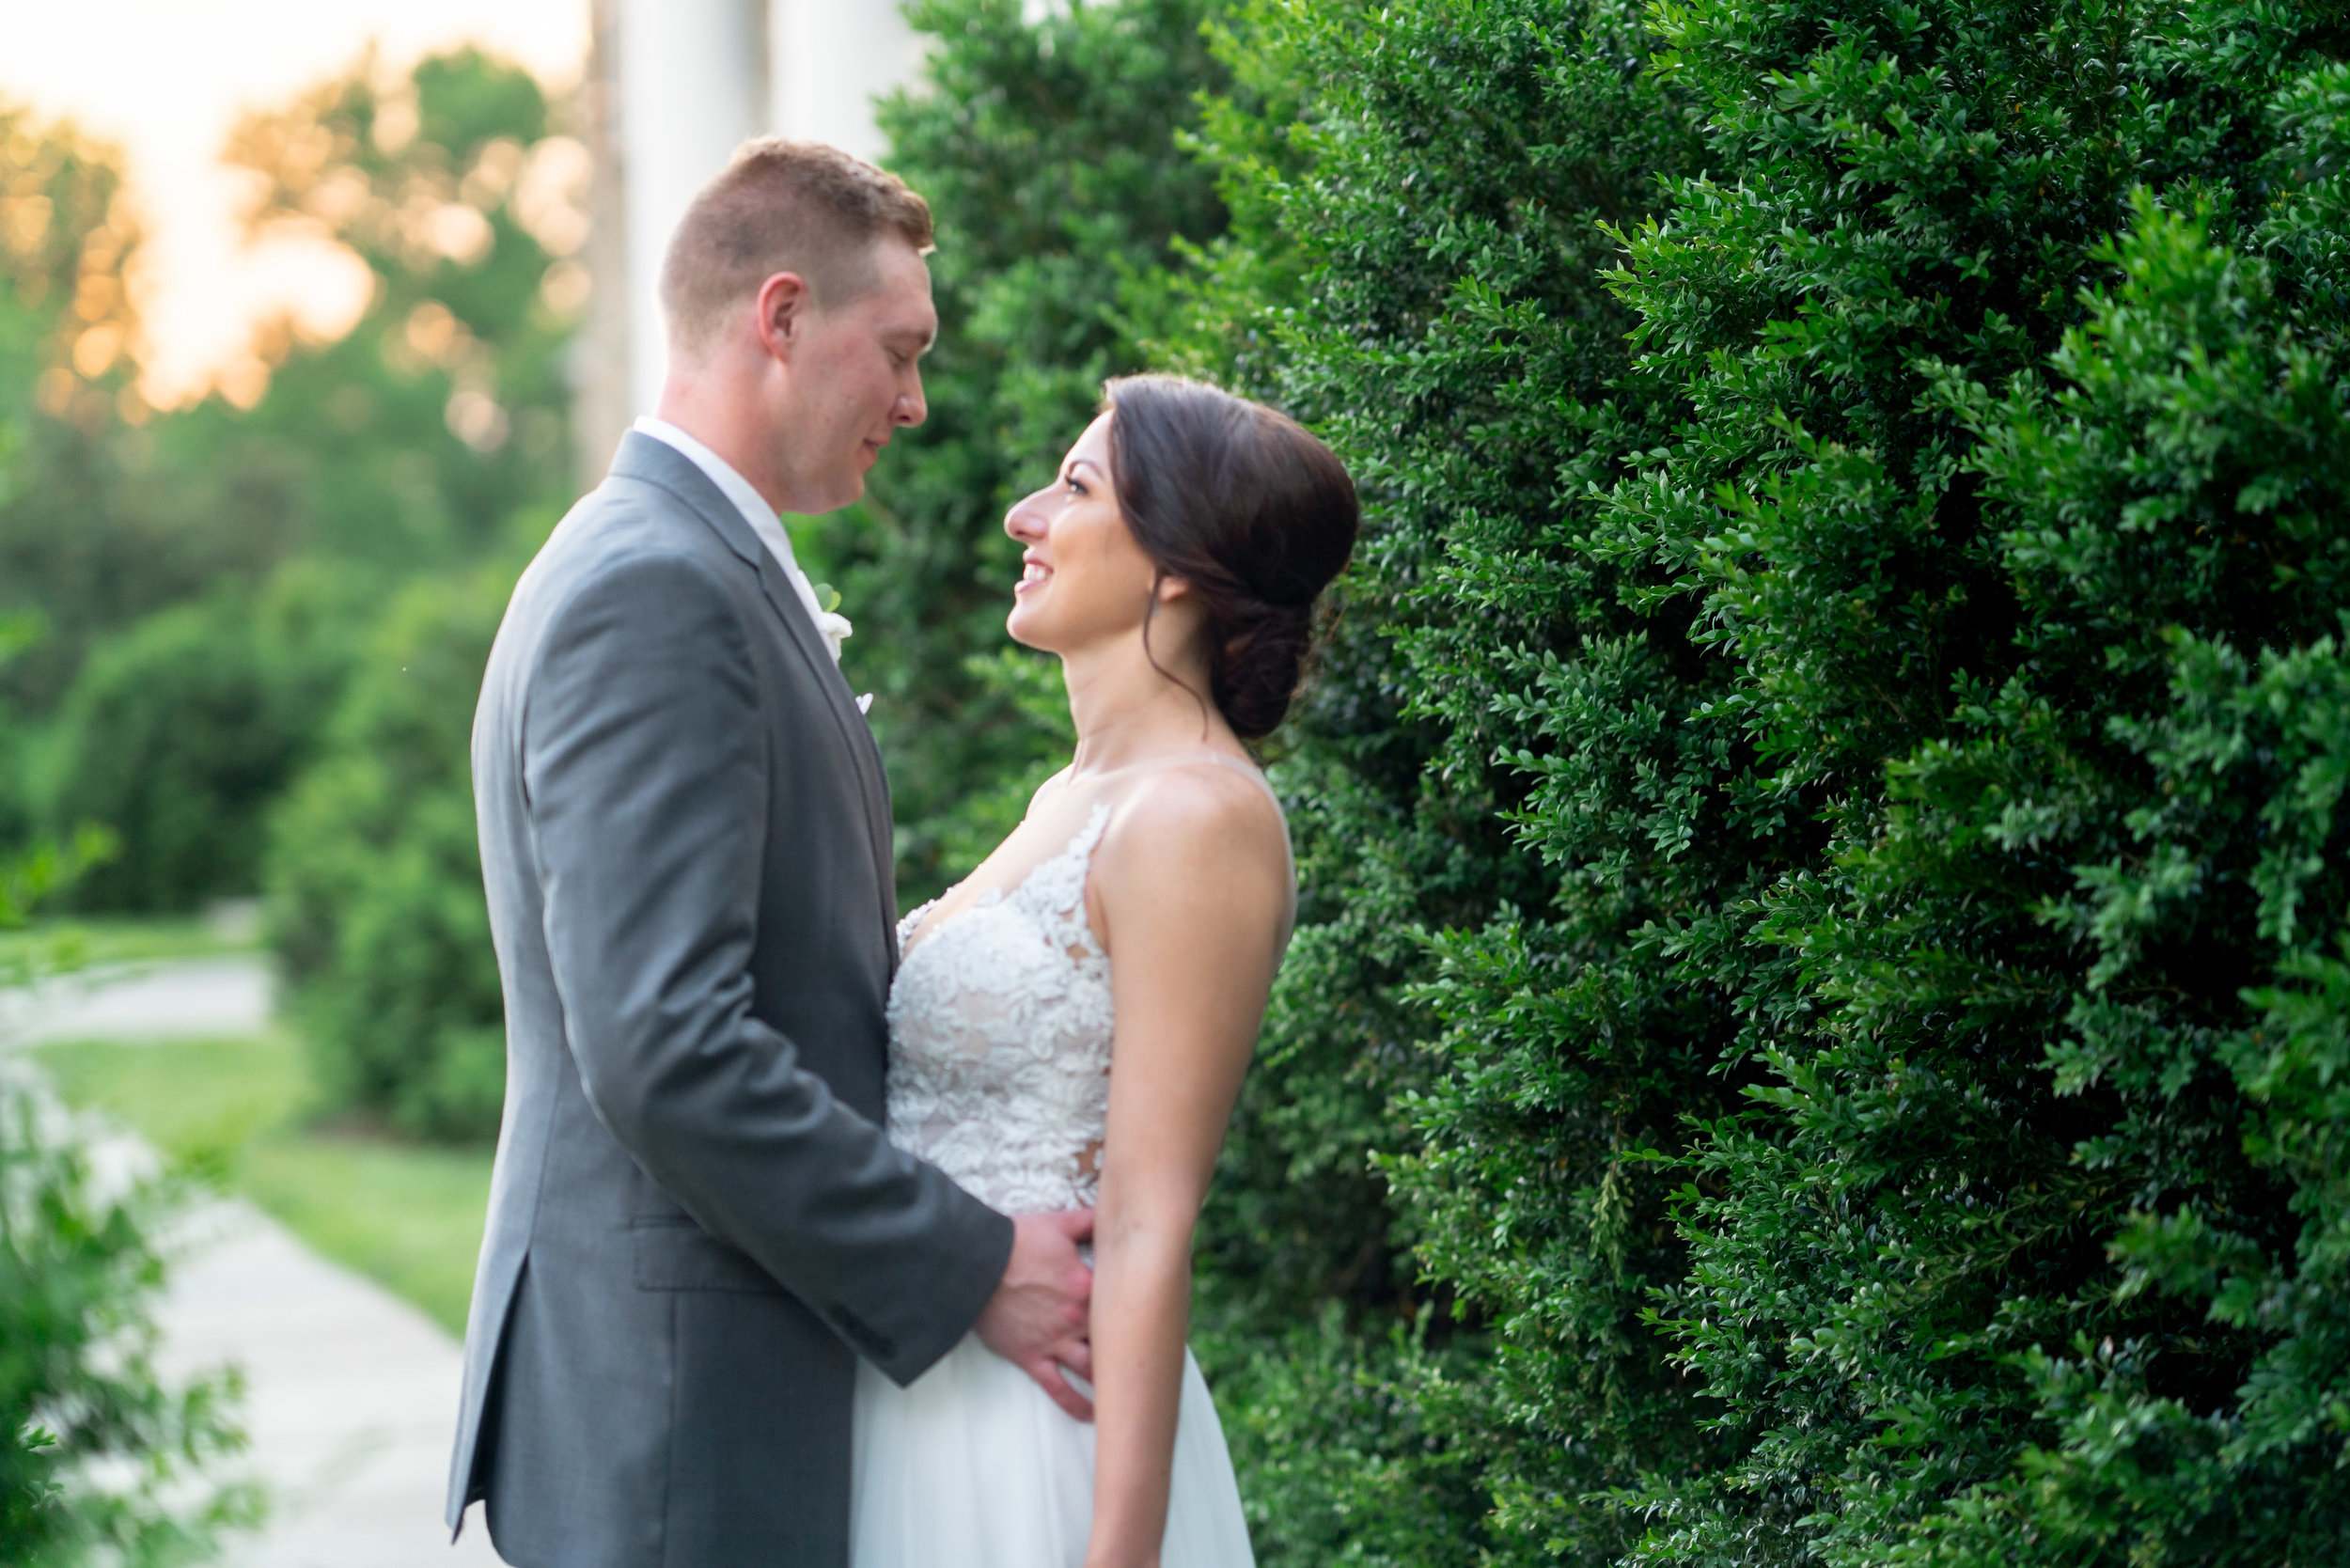 Golden hour sunset wedding portraits of bride and groom at Glenview Mansion